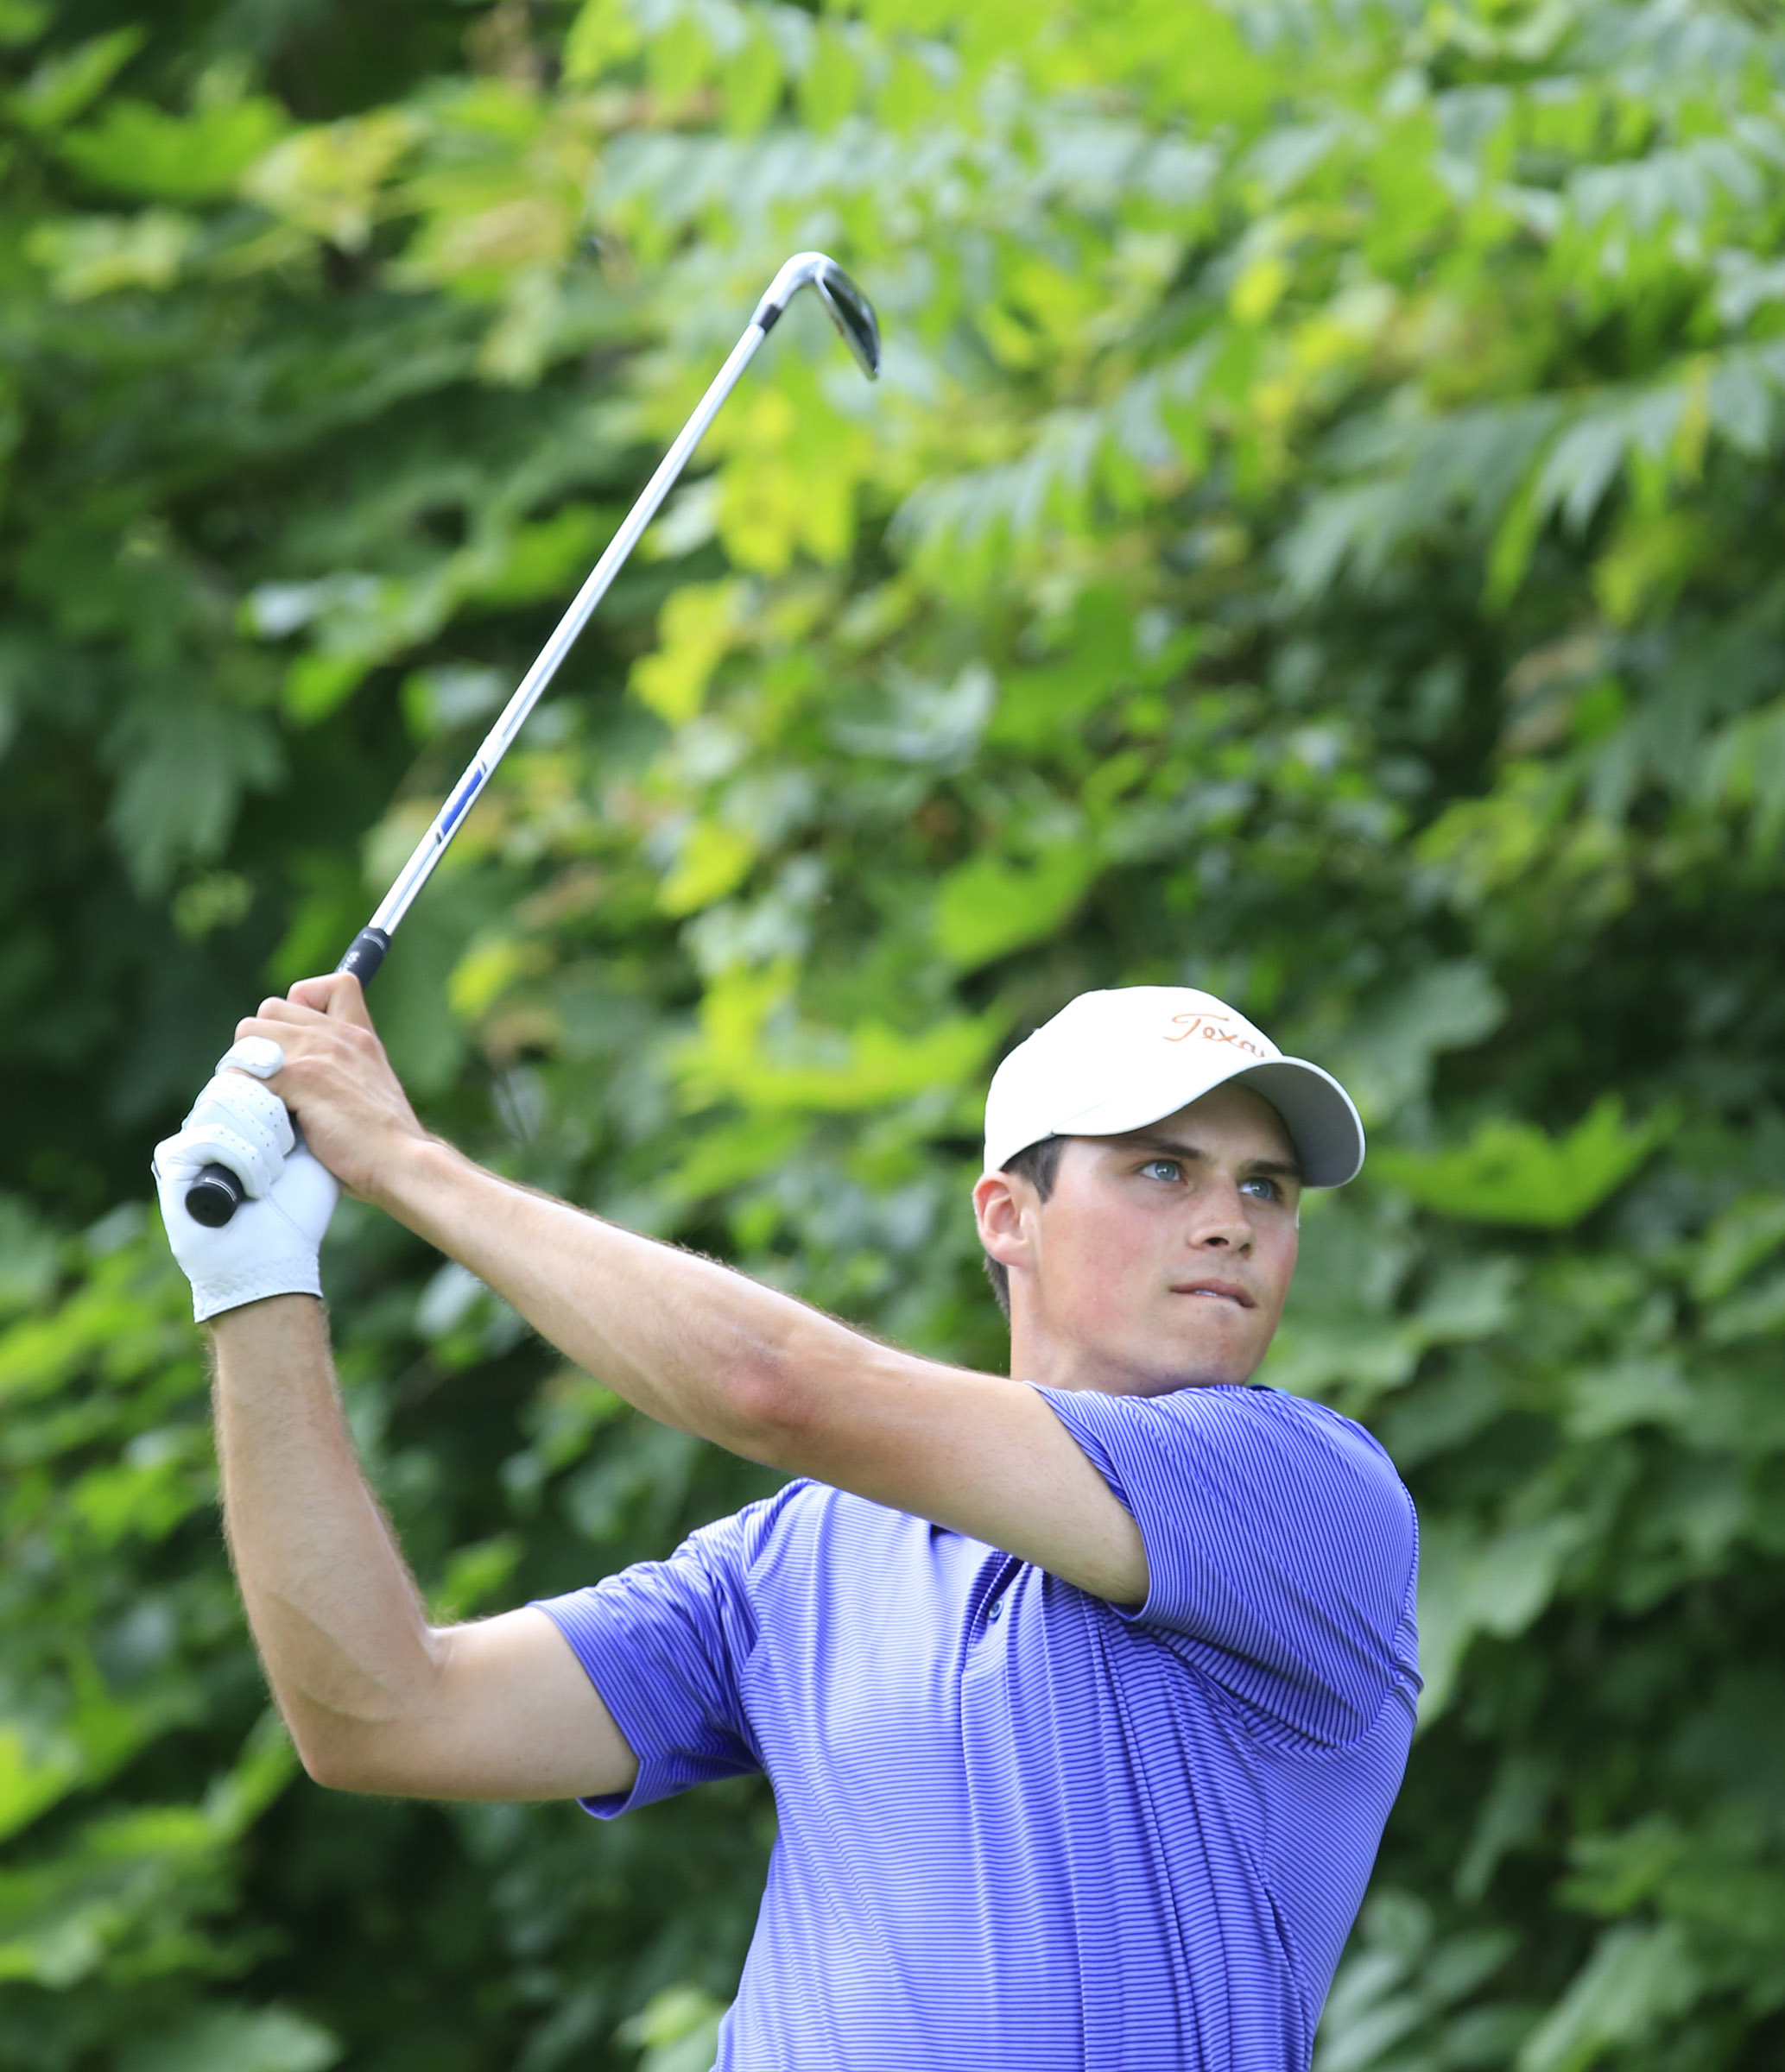 Gavin Hal lleads by two shots heading into Friday's third round of the POrter Cup (Harry Scull Jr./Buffalo News).